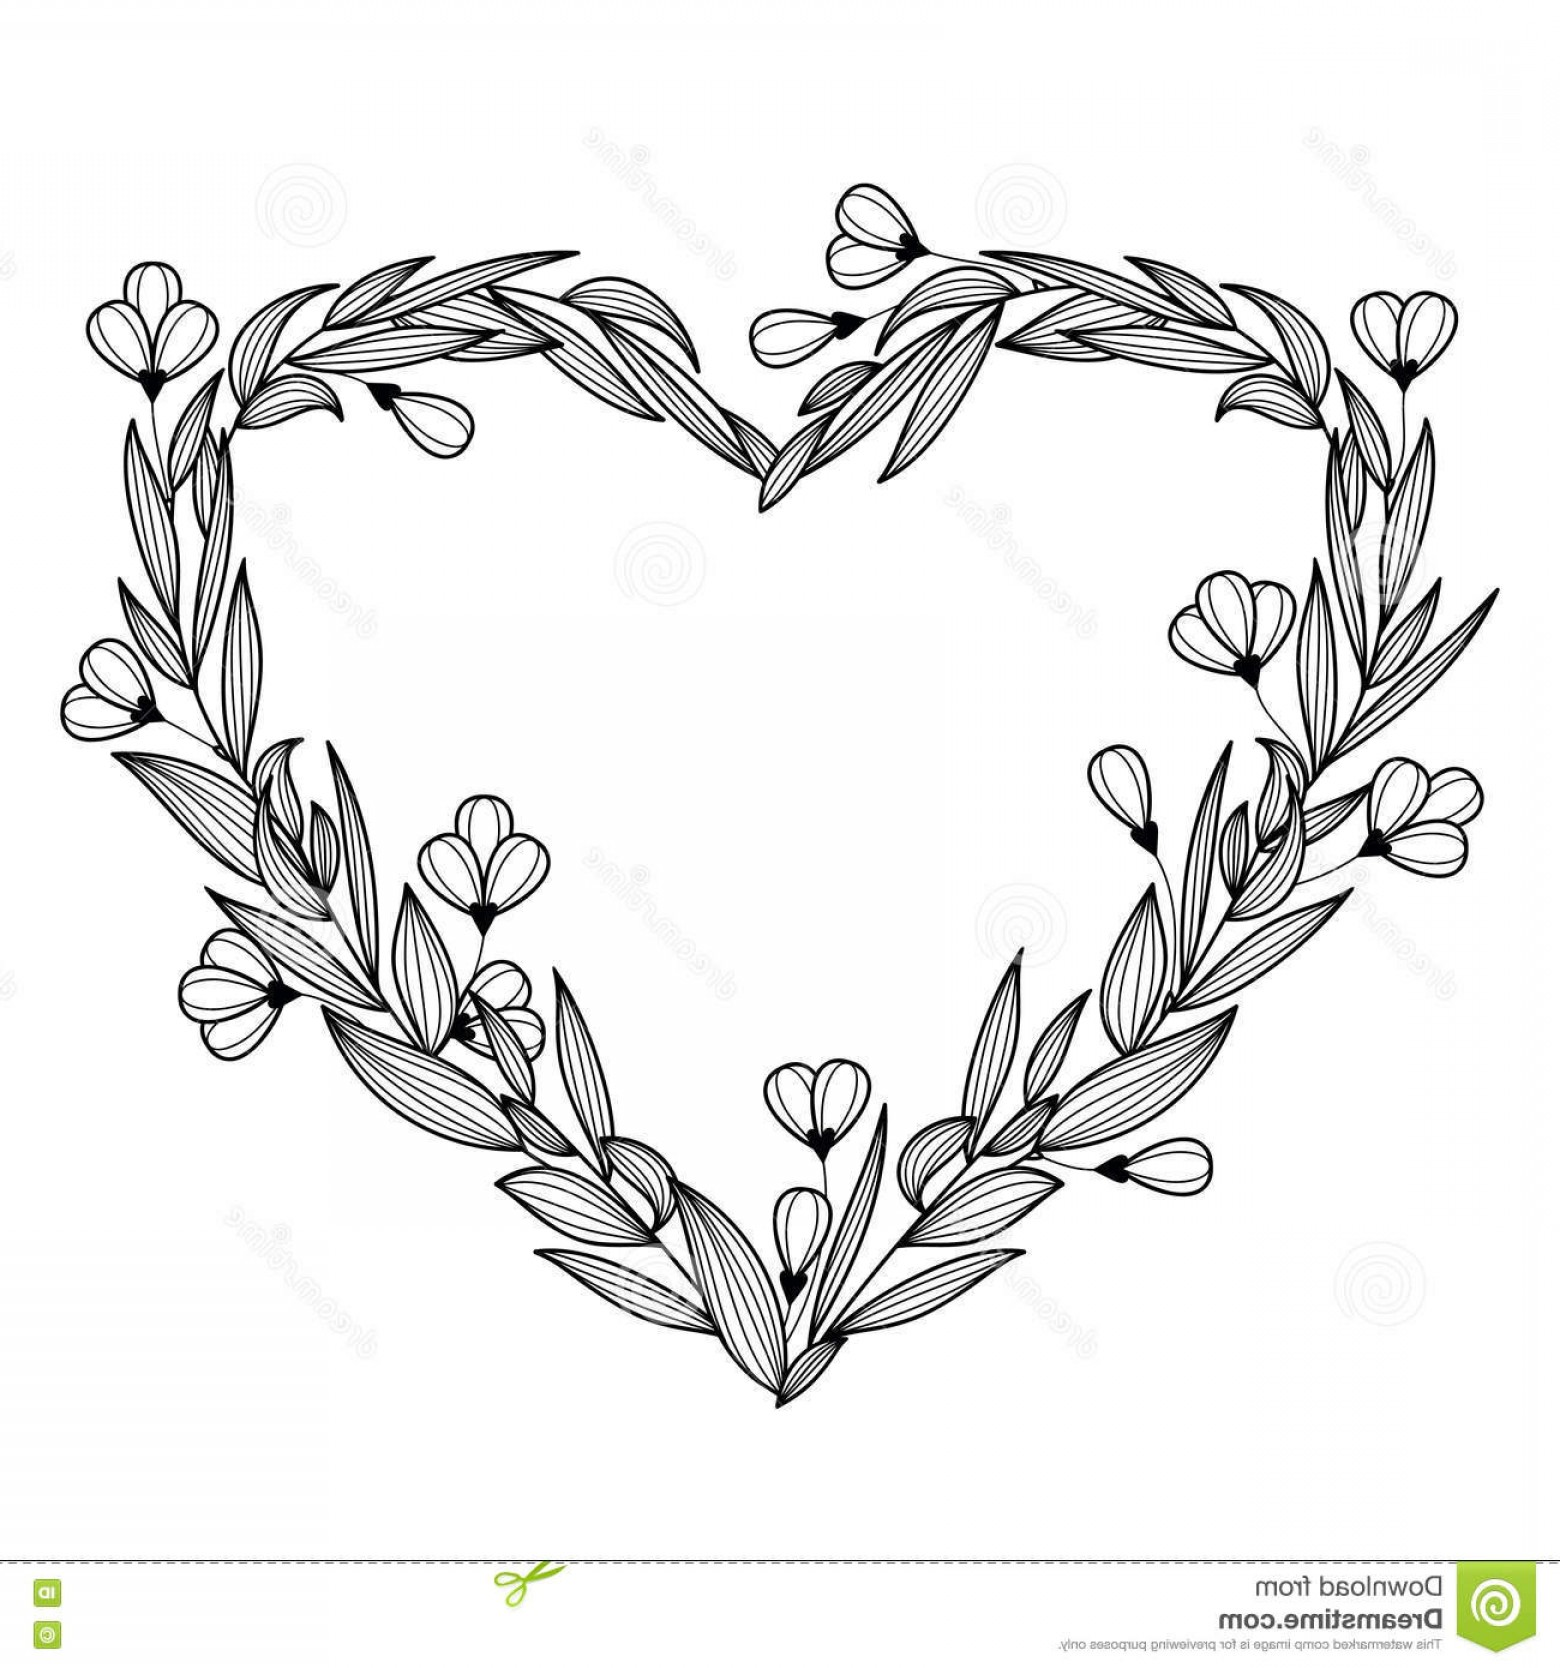 Rustic Heart Vectors: Hand Drawn Vintage Floral Wreath In The Shape Of Heart Vector I Illustration